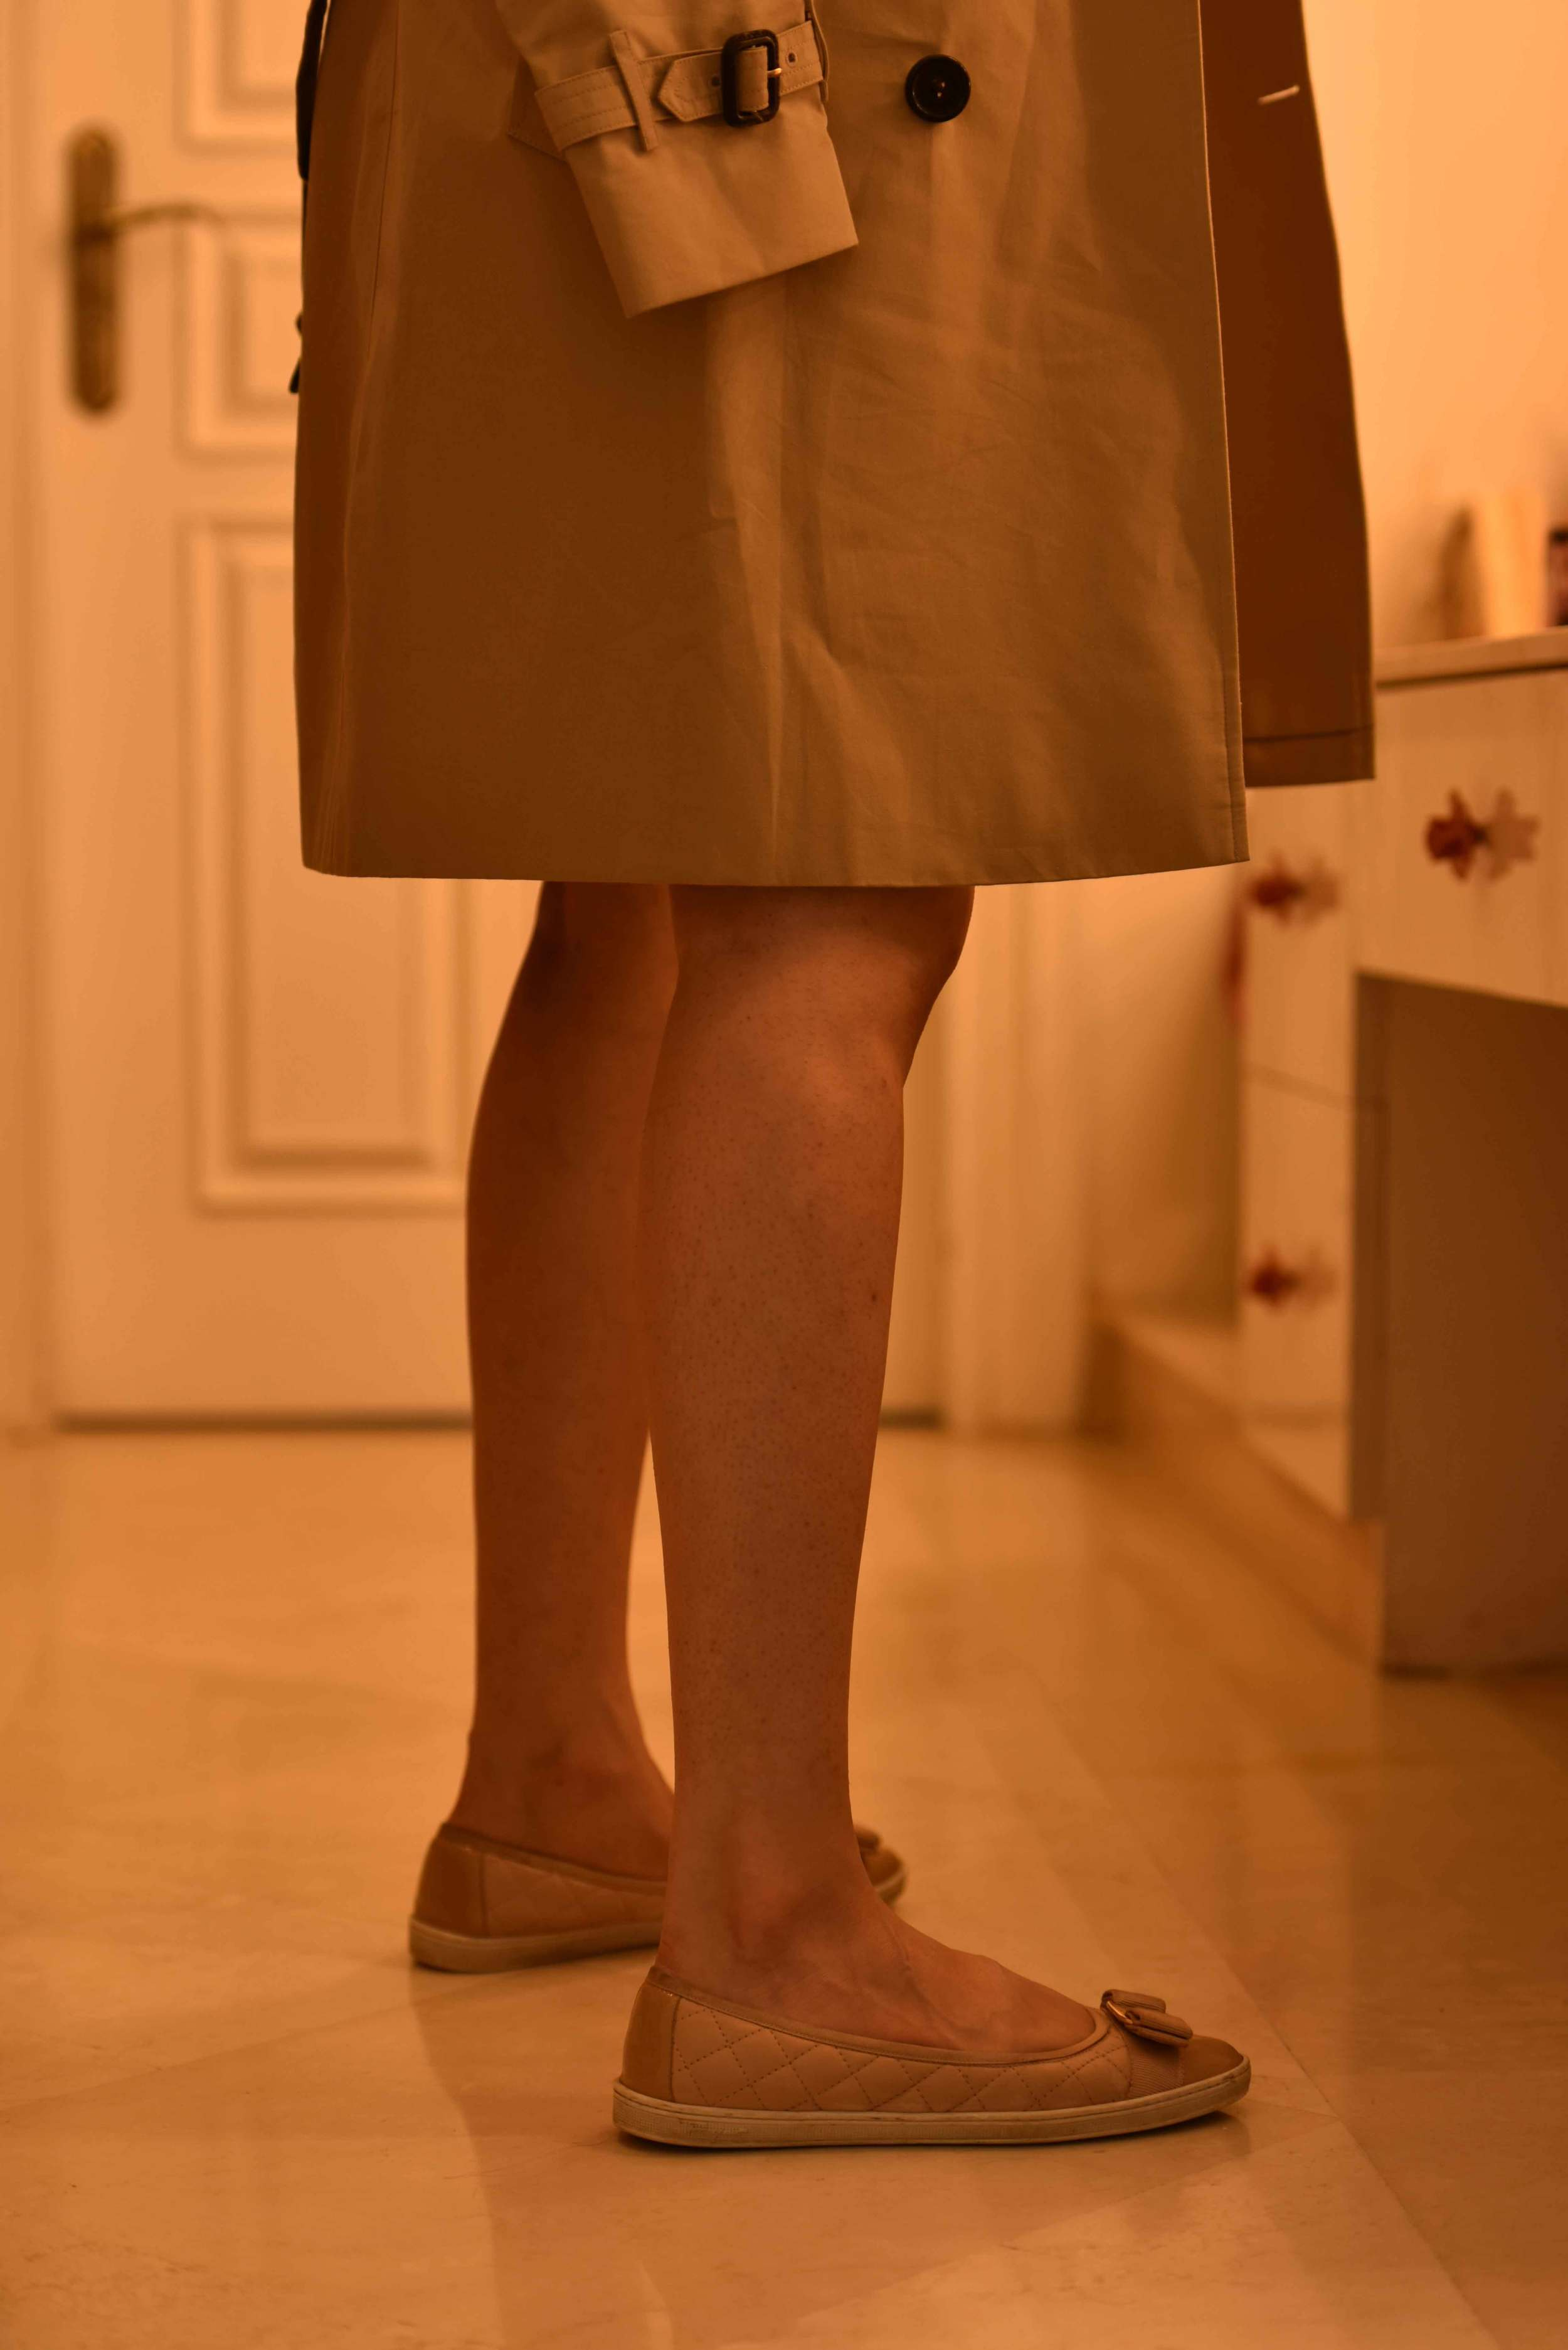 A classic Burberry trench coat, Ferragamo nude ballet flats. Image©sourcingstyle.com